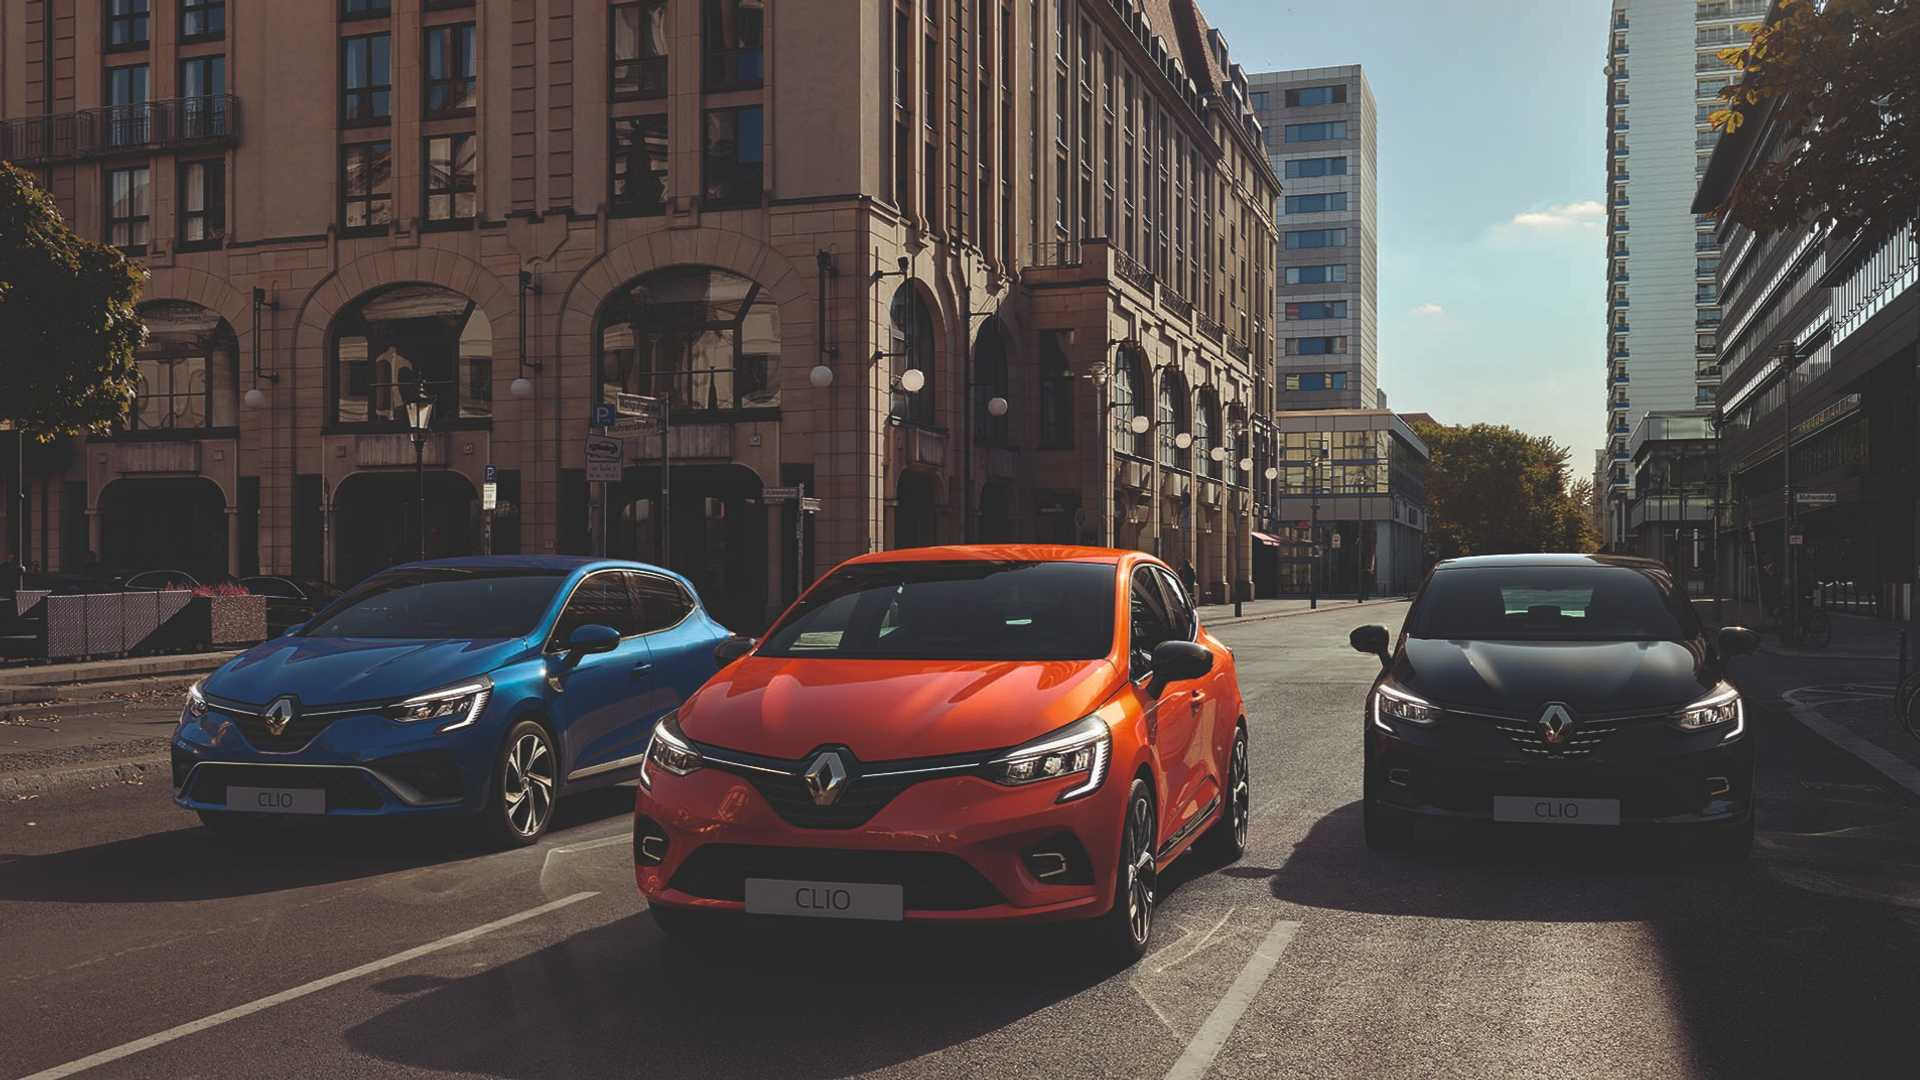 Order books open for new £14,275 Renault Clio